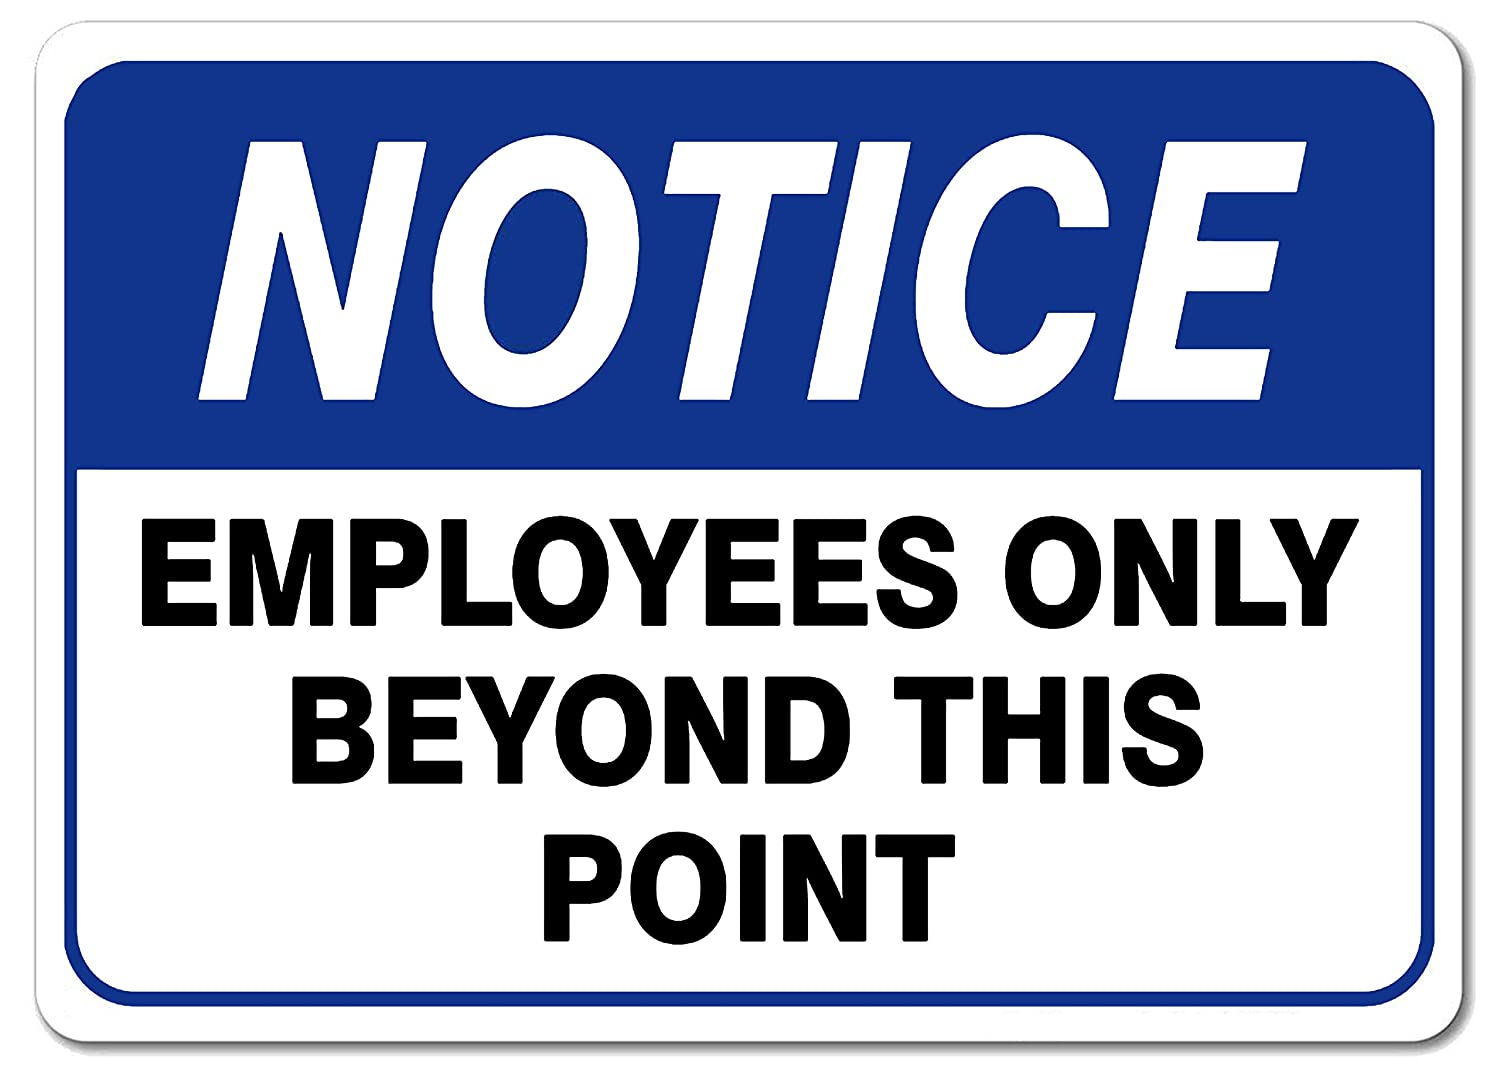 Employees Only Beyond This Point Office Safety Warning Sign Blue Metal Tin Sign Wall Decor 8X12 Inch PXIYOU Notice Employees Only Sign